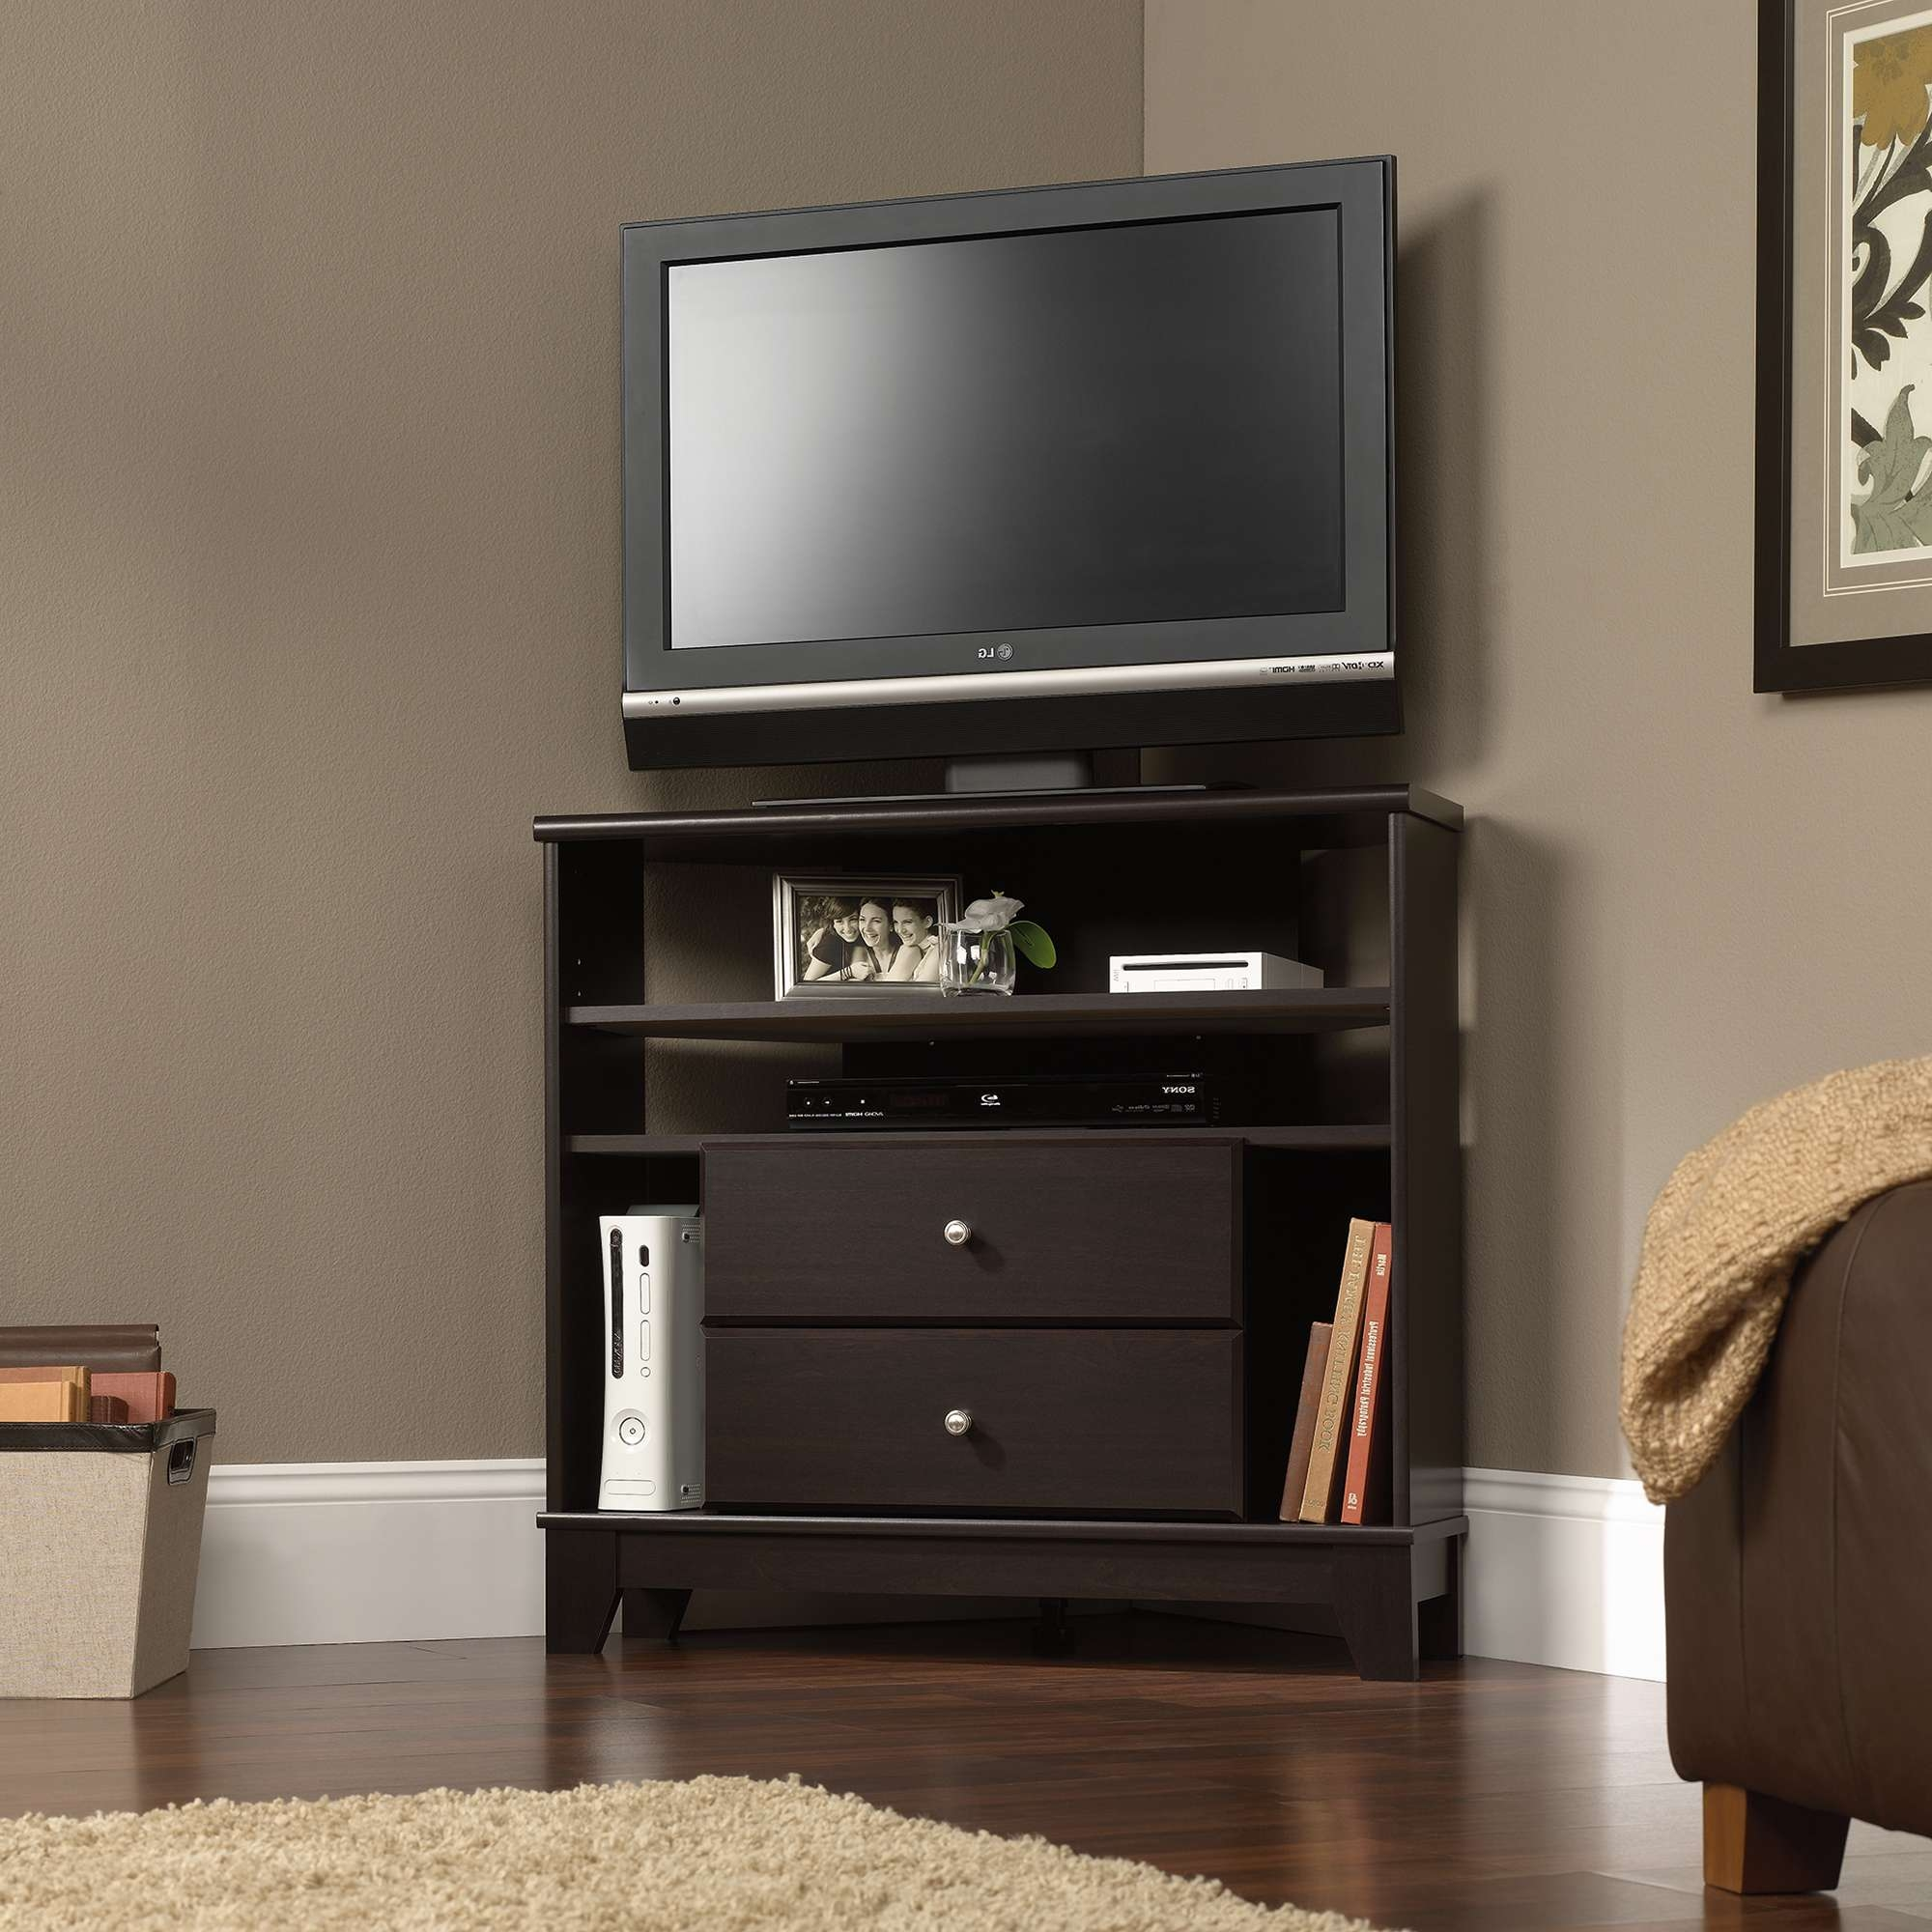 Furniture Glossy Wood Sauder Tv Stand Design With White Windows Throughout White Small Corner Tv Stands (View 5 of 15)